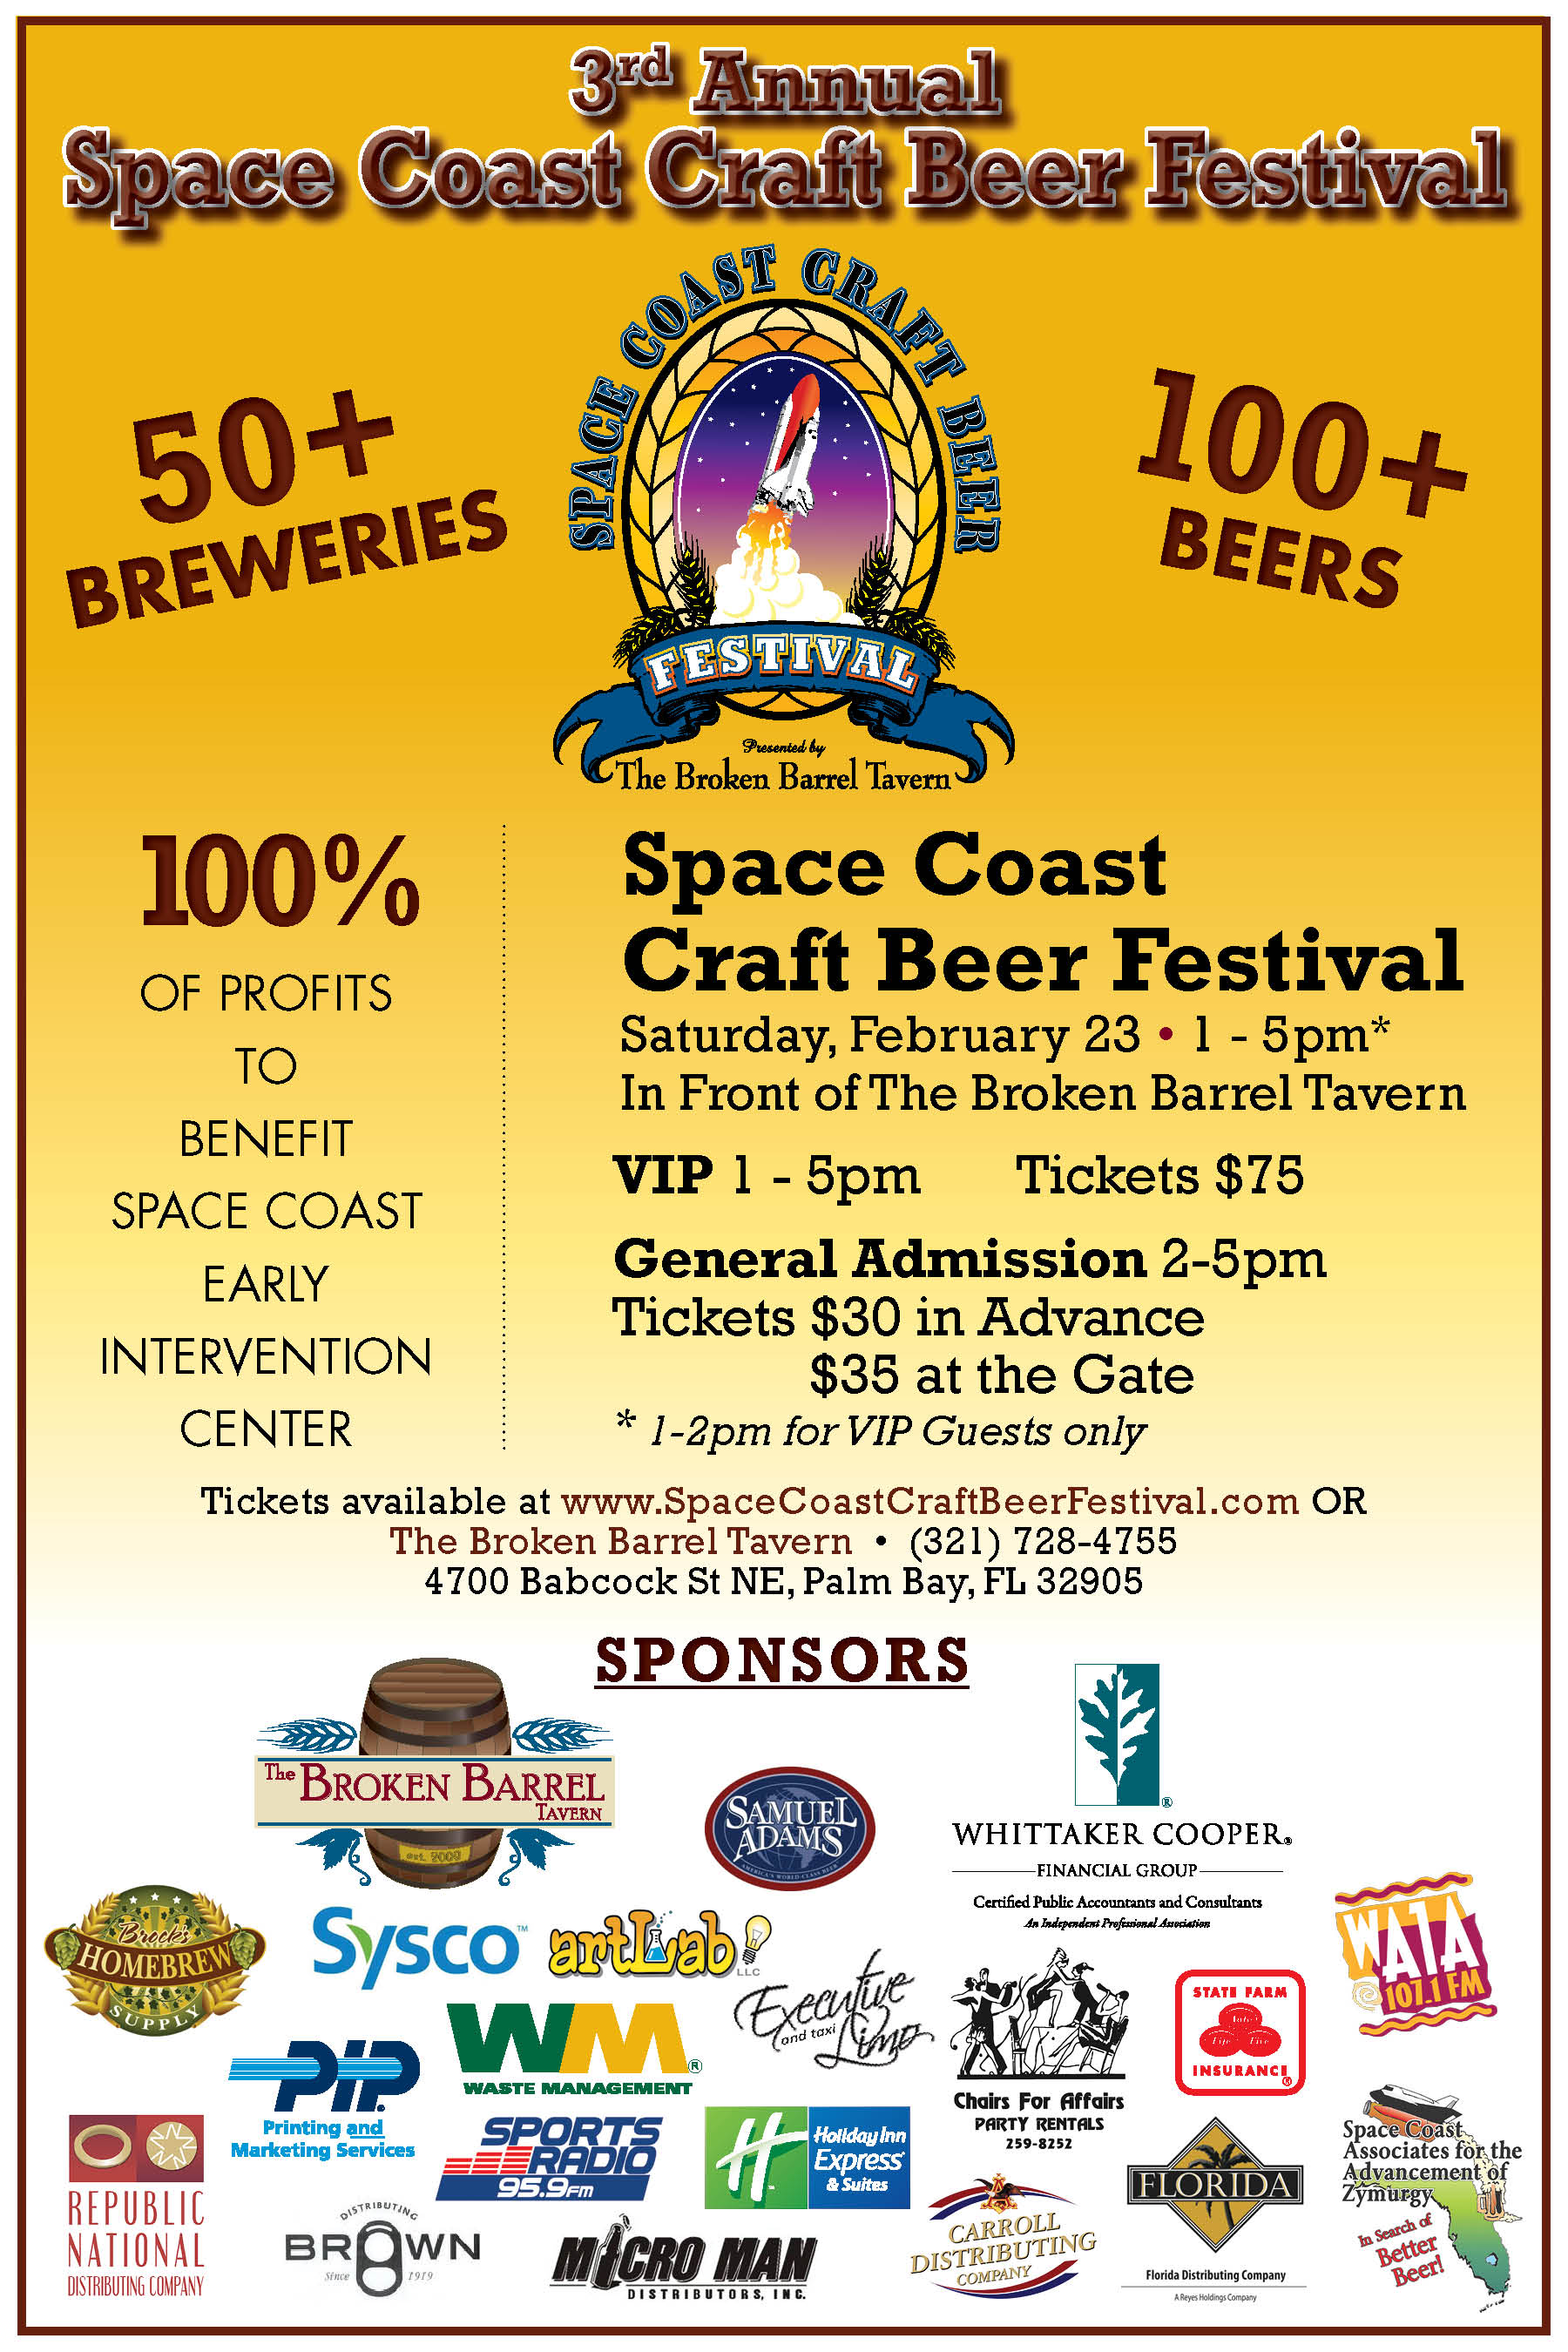 3rd Annual Space Coast Craft Beer Festival